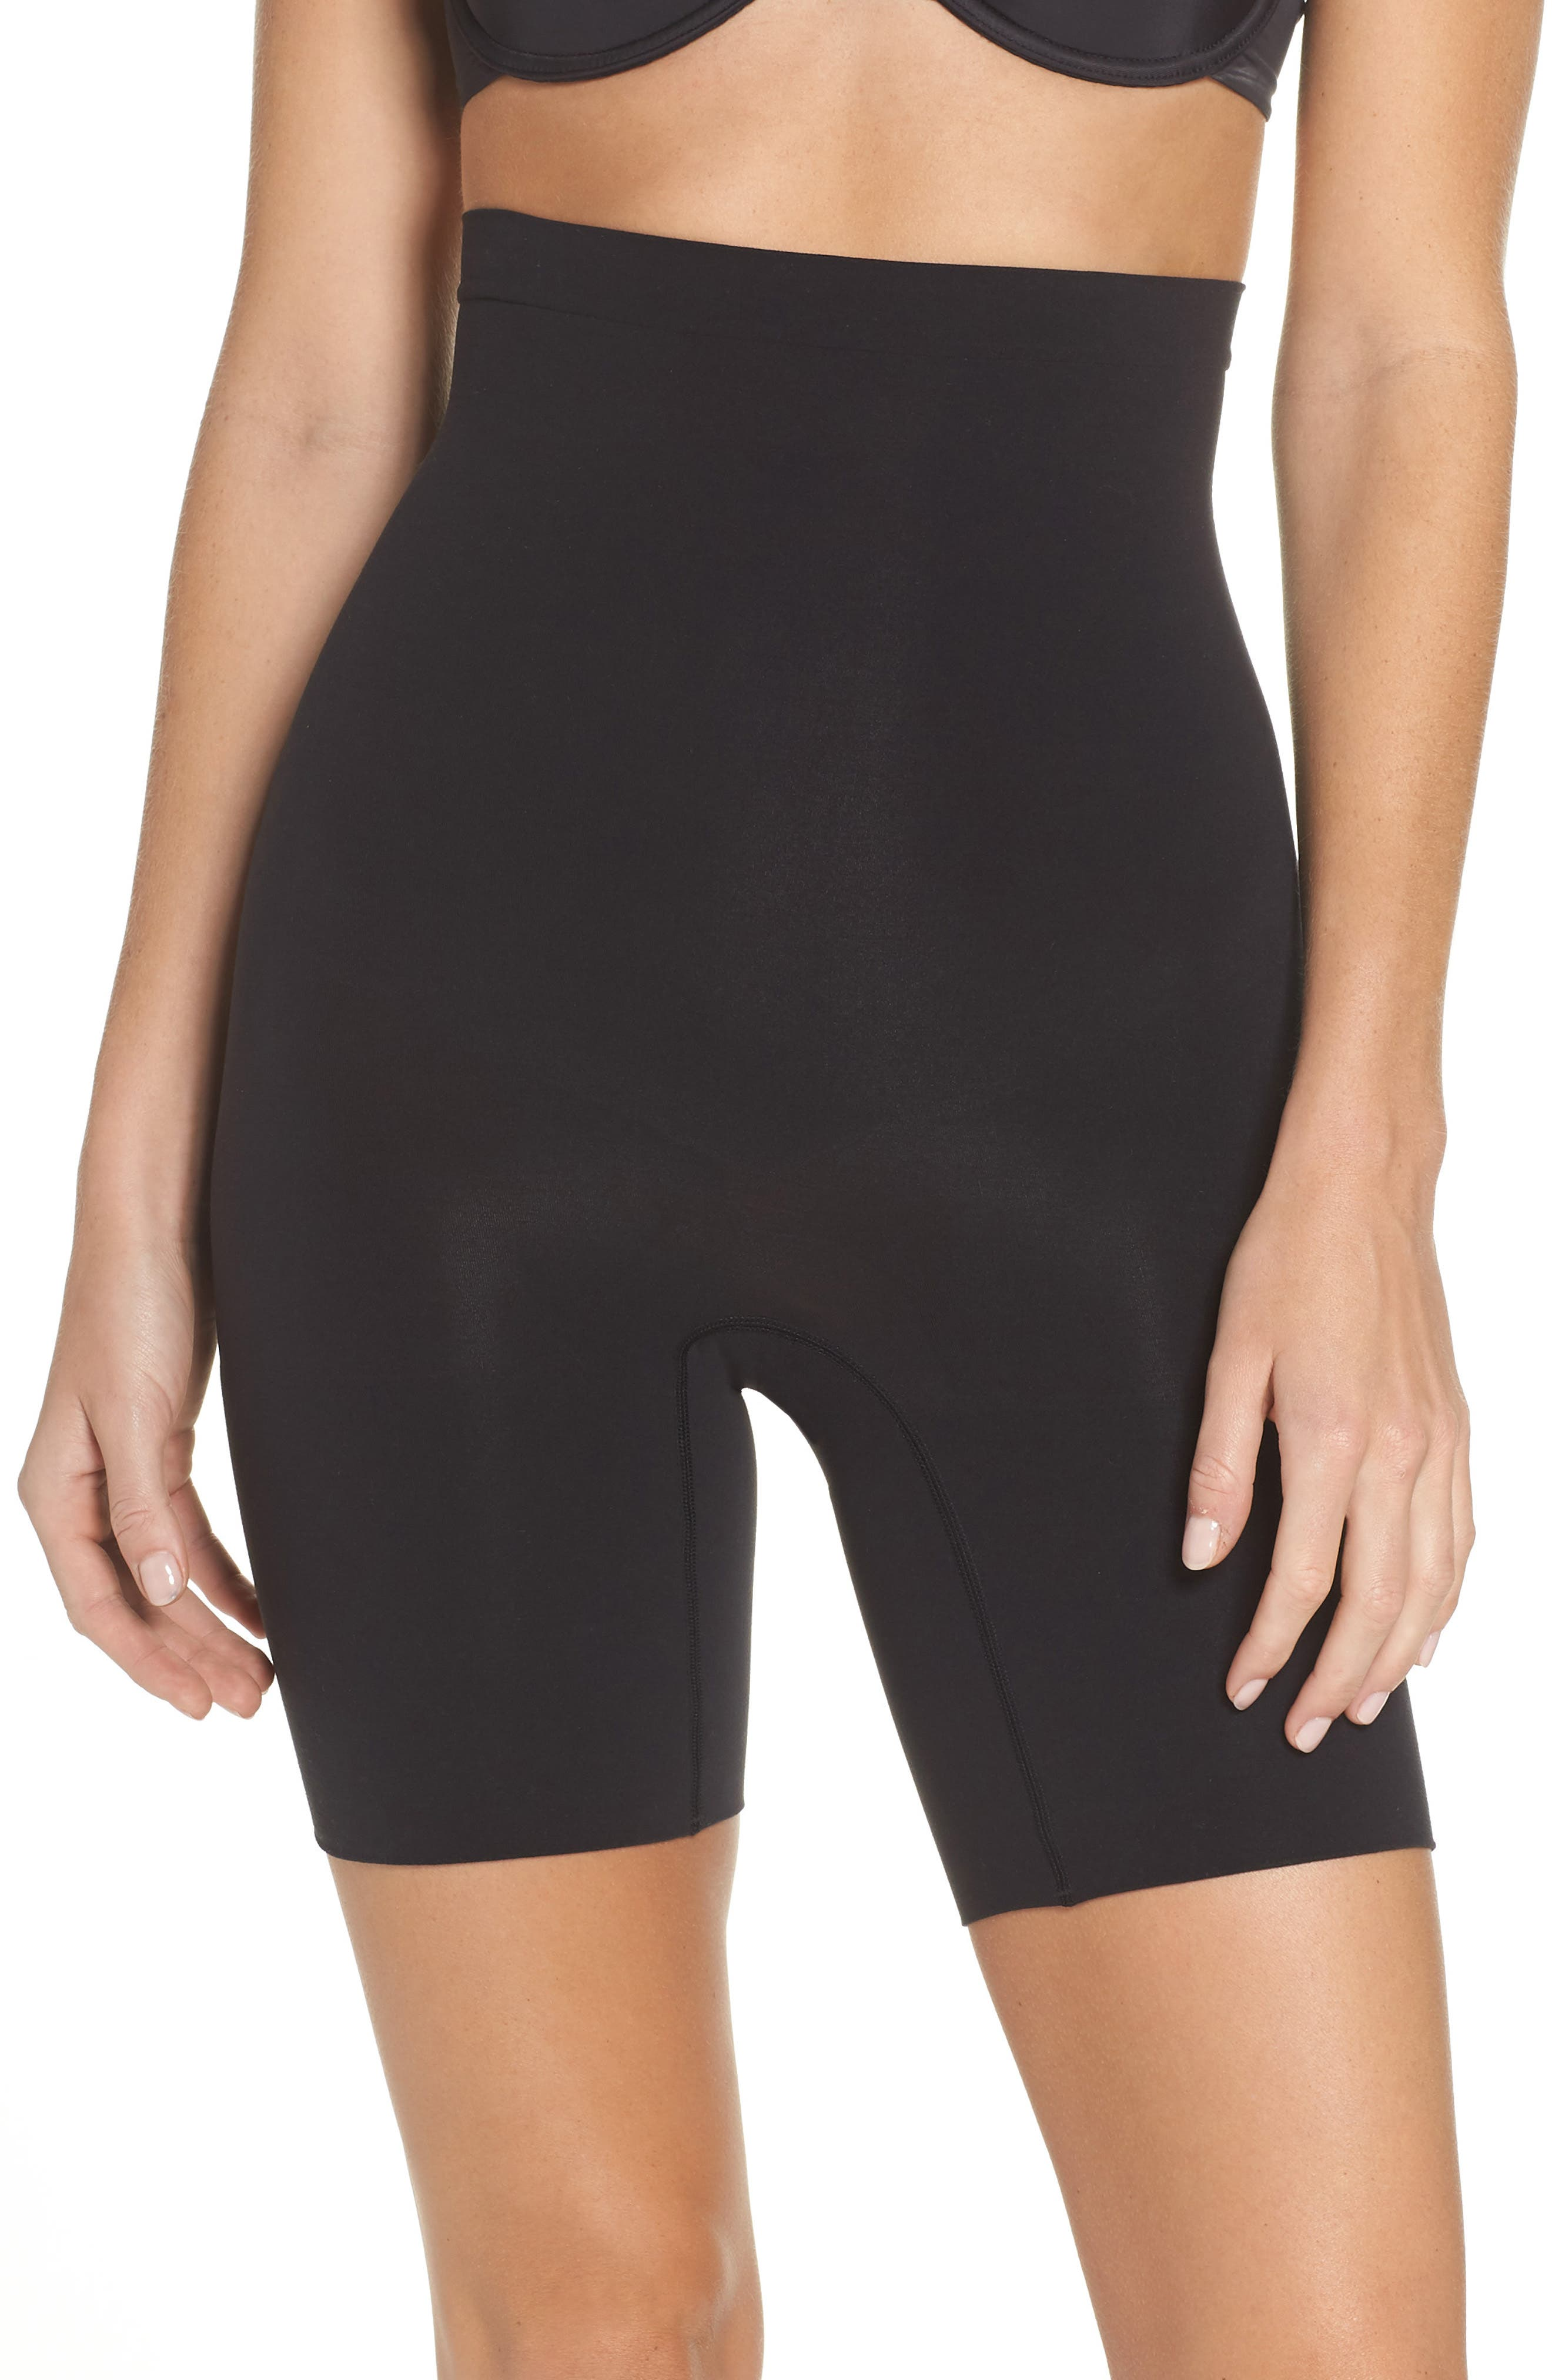 Lightweight with all-day shaping that\\\'s center-seam free-these everyday-essential shorts of soft yarns offer smoother results with less squeeze. Style Name: Spanx Higher Power Shorts (Regular & Plus Size). Style Number: 1074776. Available in stores.